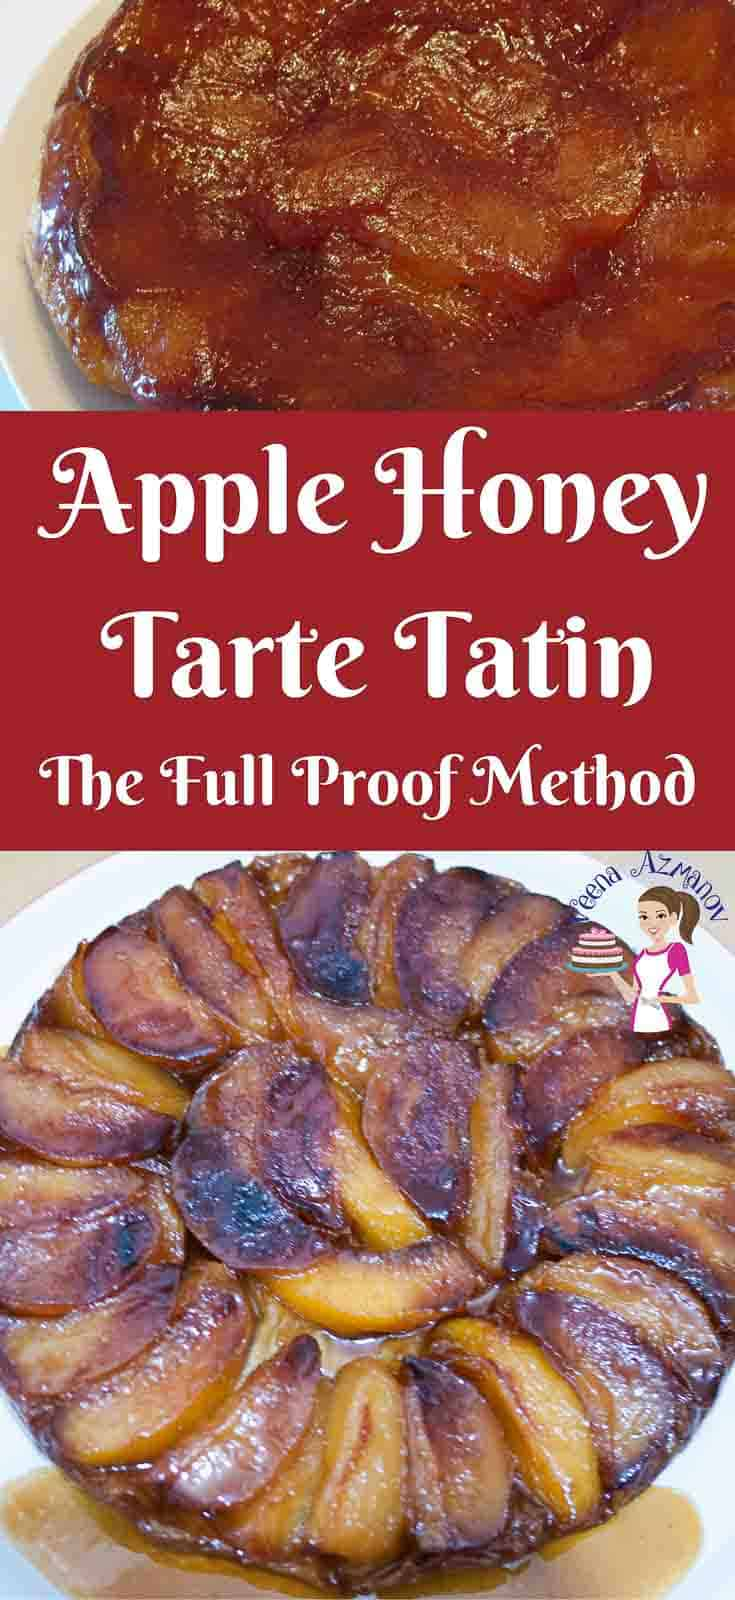 This golden apple honey tarte tatin also sometimes referred to as up-side down pastry is made with caramelized fruit cooked in butter and sugar then baked under a rich butter based puff pastry. The soft juicy and caramelized apples in this just melt in the mouth having absorbed all the flavors and slow cooking.